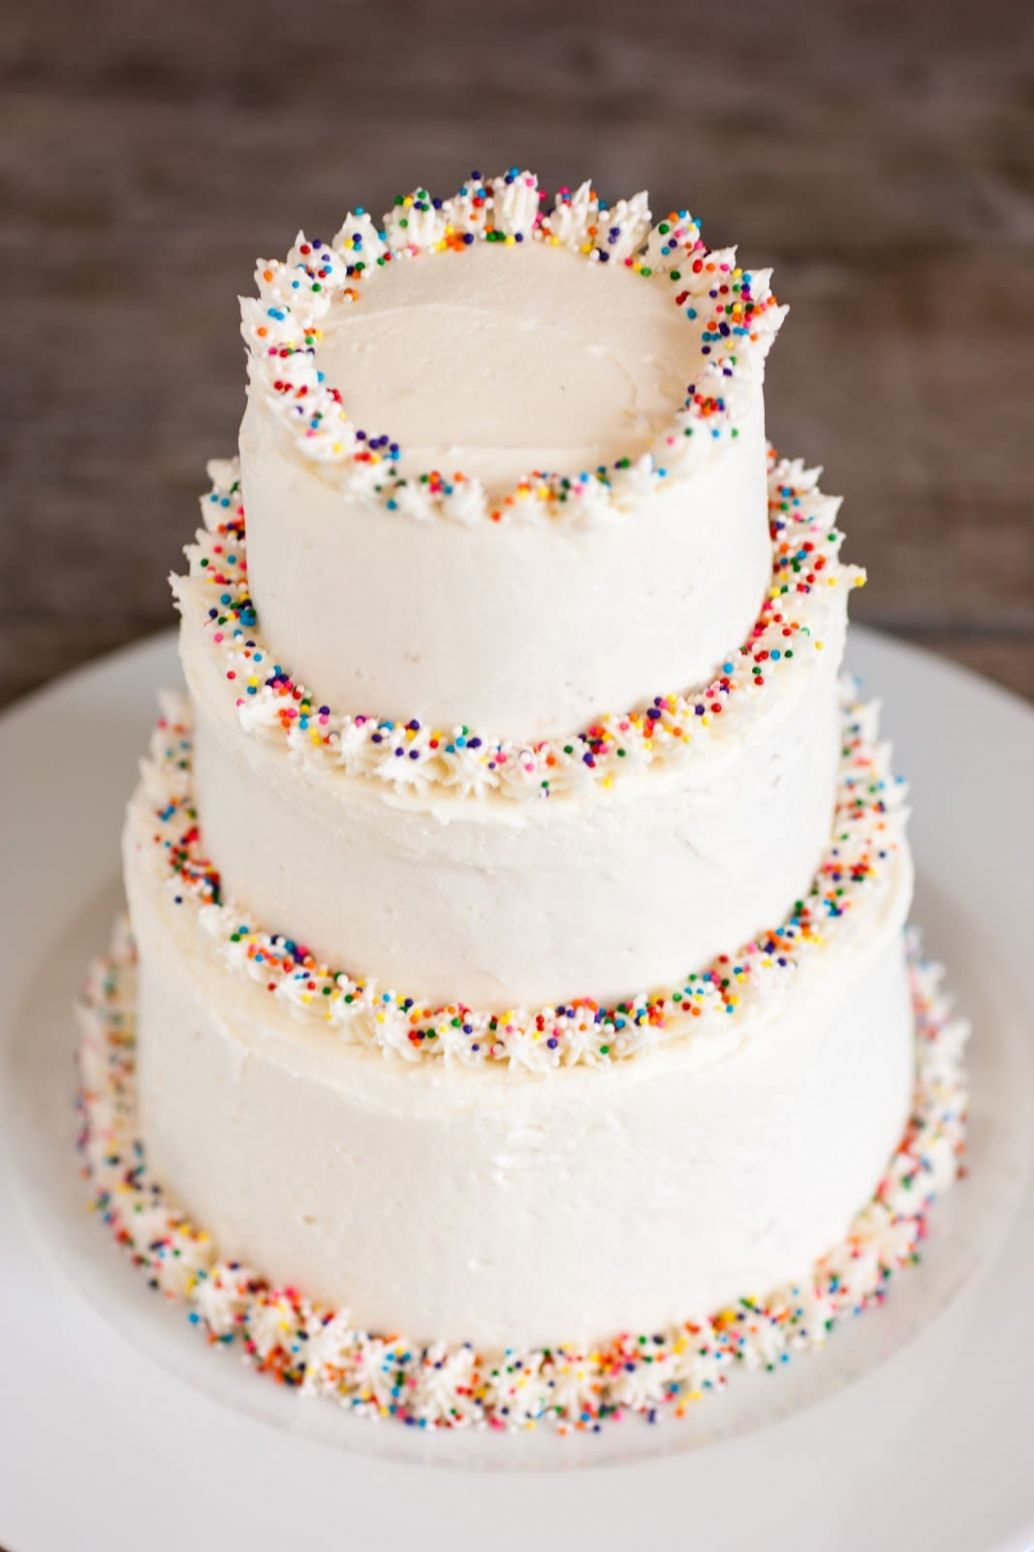 Vanilla Buttercream Frosting - Recipes Cake Icing